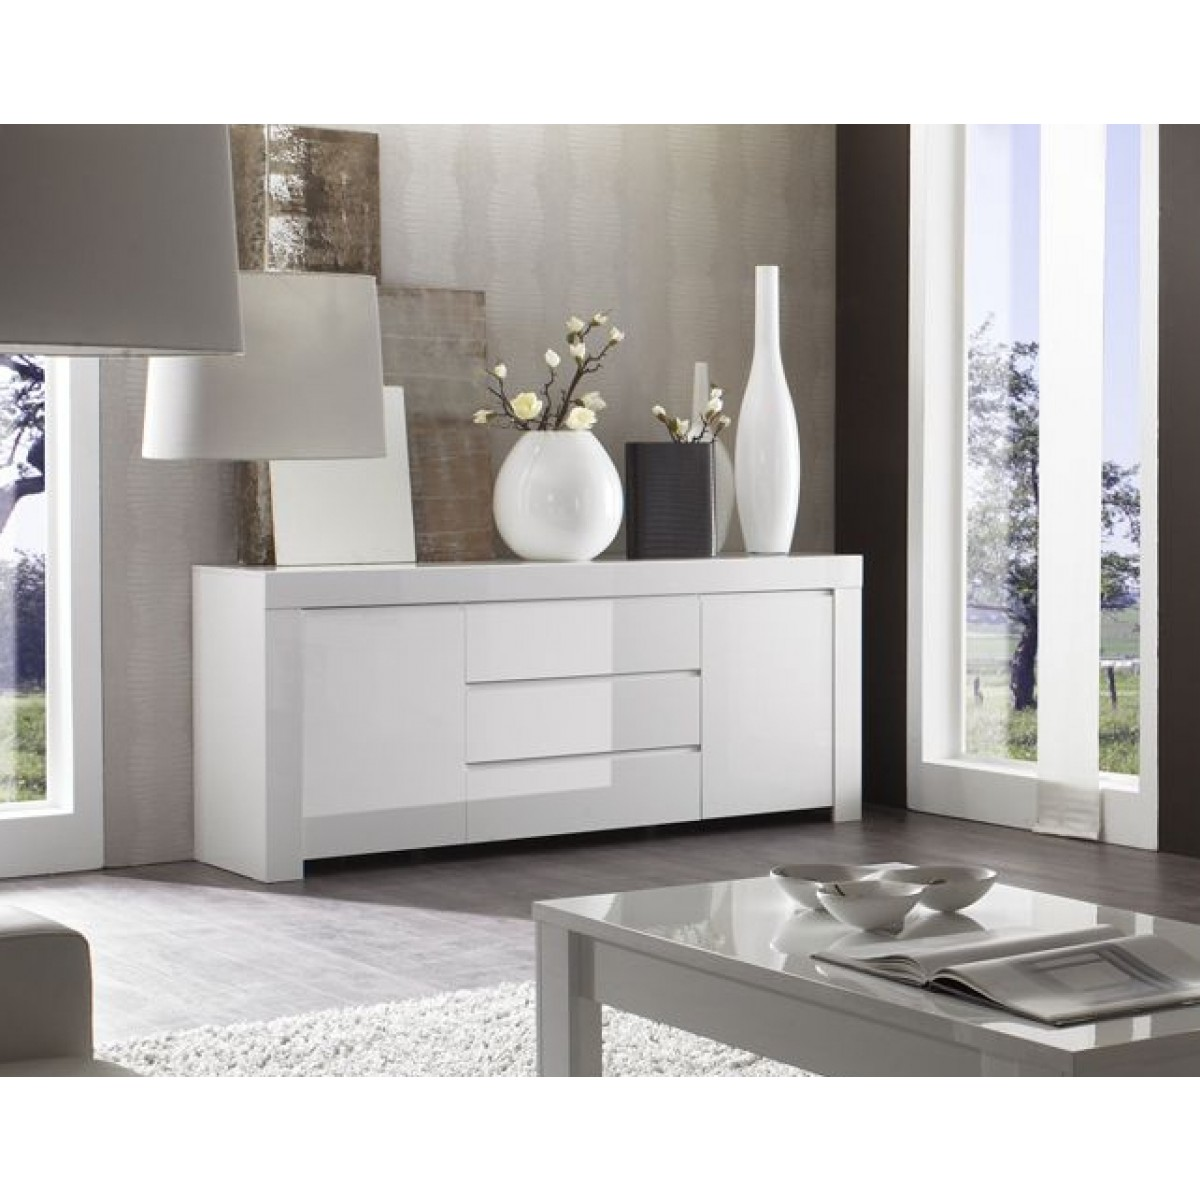 meubles design vintimille italie. Black Bedroom Furniture Sets. Home Design Ideas